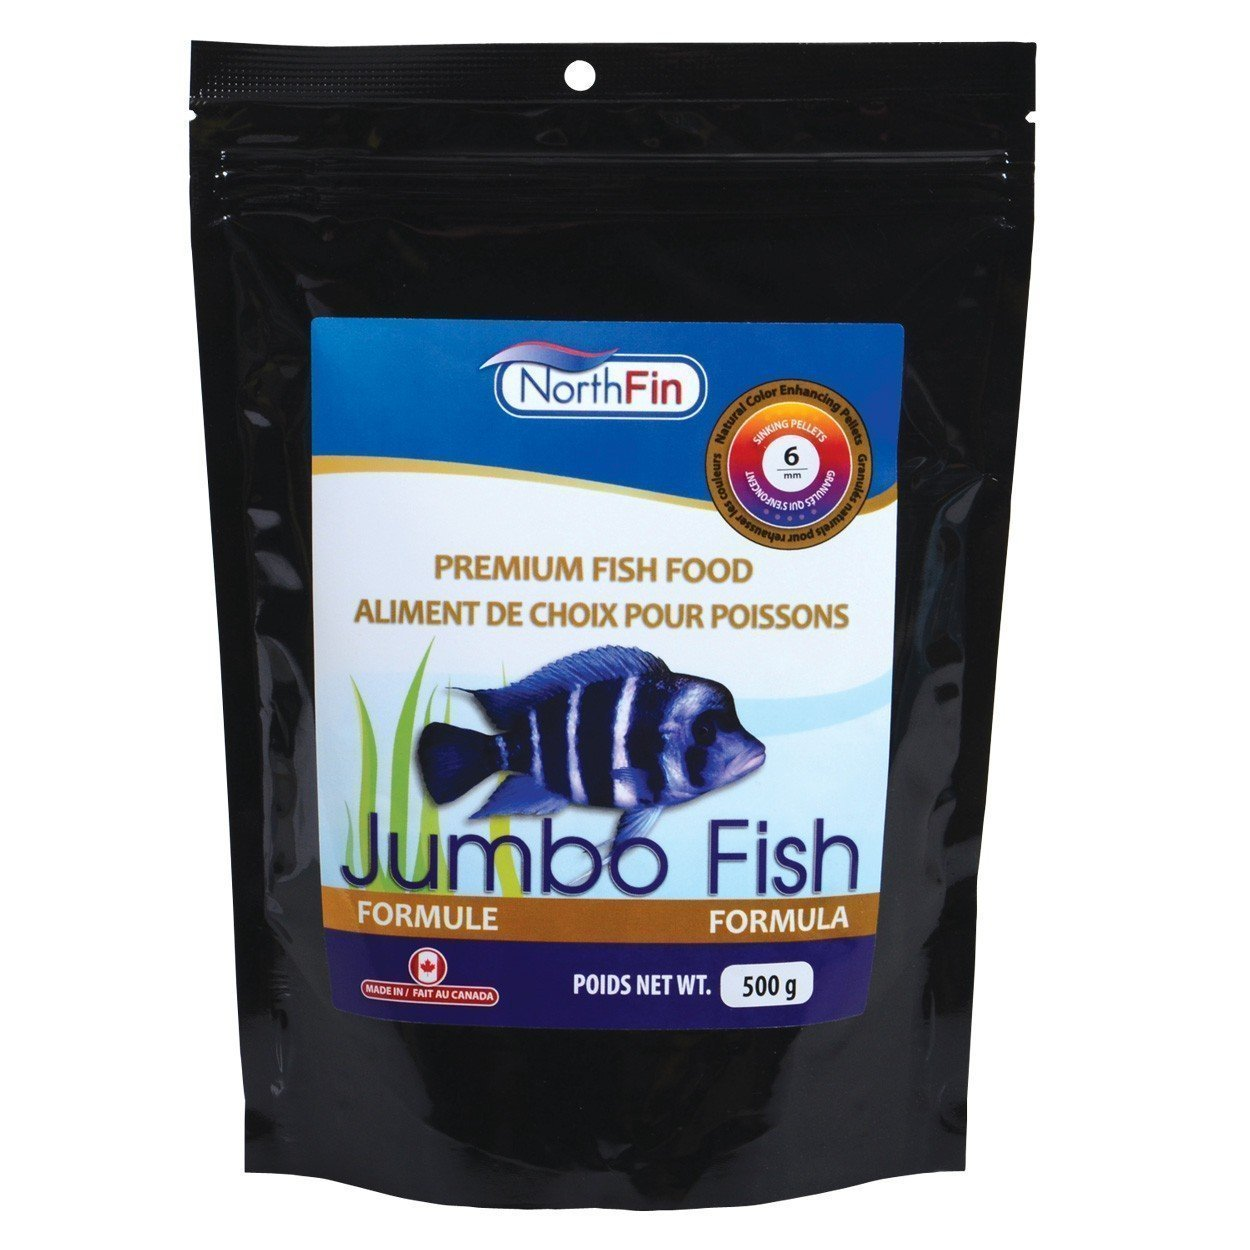 Food Jumbo Formula 6mm Pellet 500 Gram Package, Nutritious daily diet for larger freshwater carnivores and omnivores By Northfin